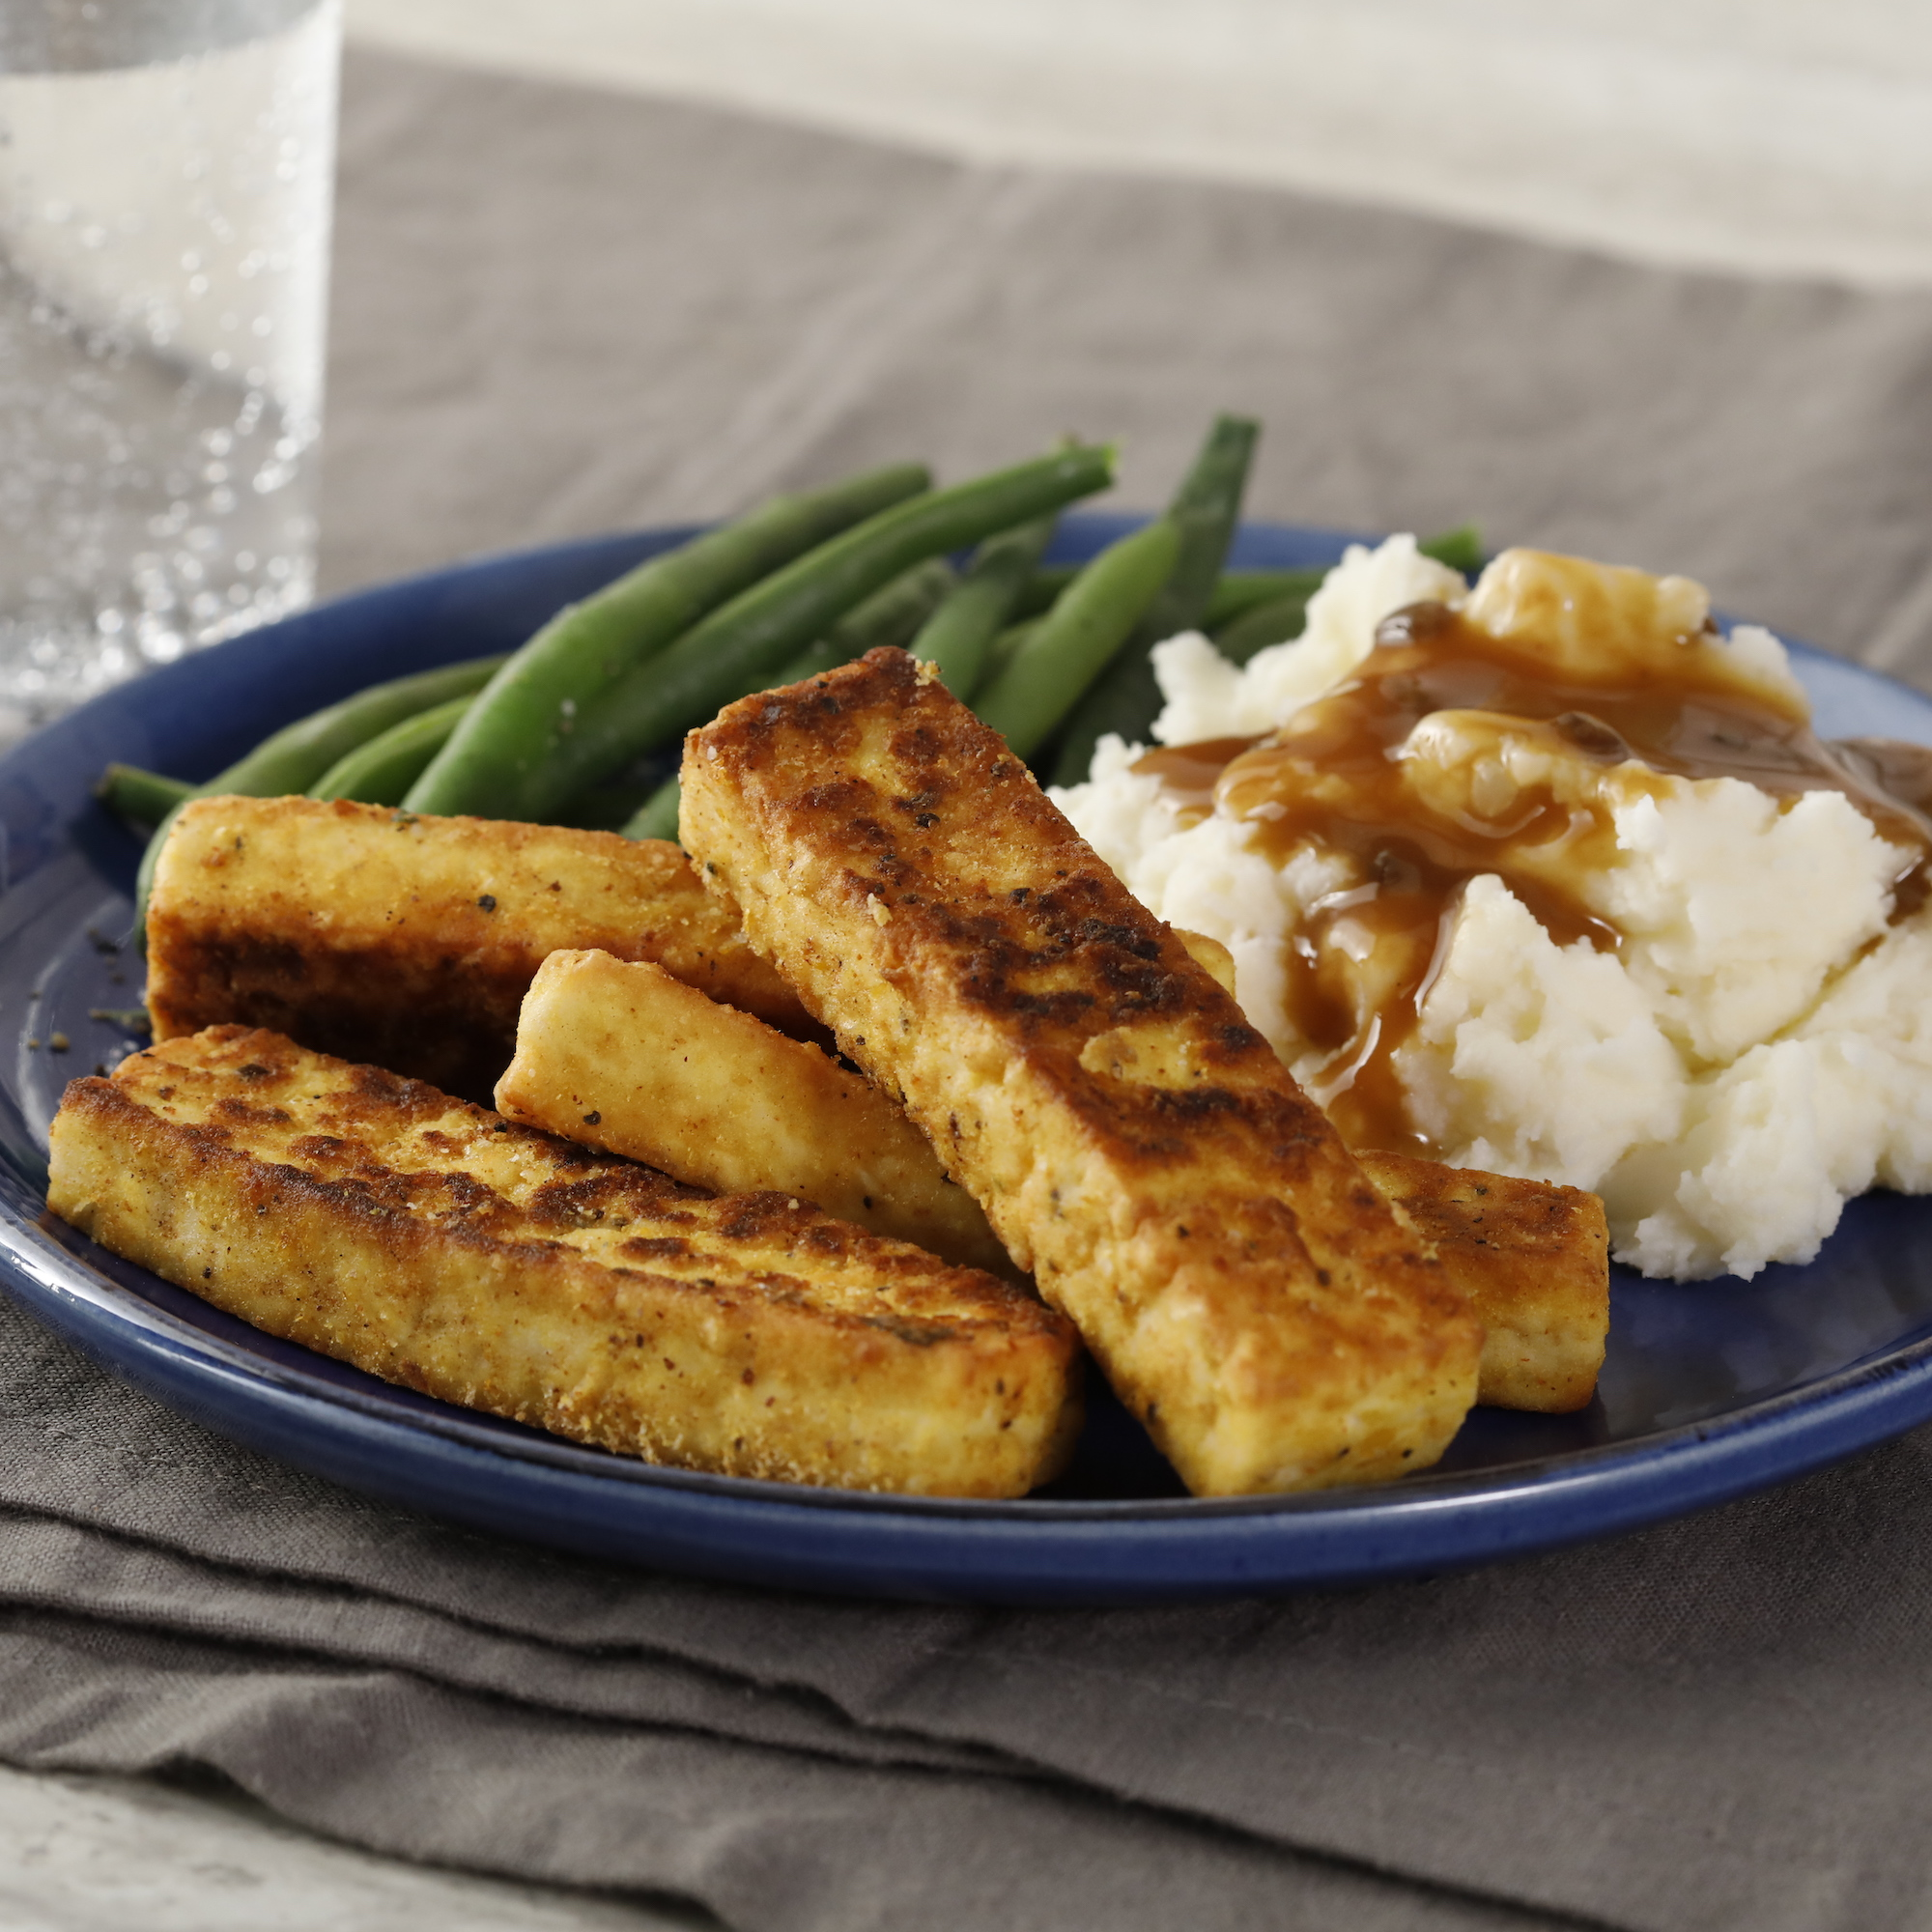 fried tofu slices on plate with mashed potatoes and green beans